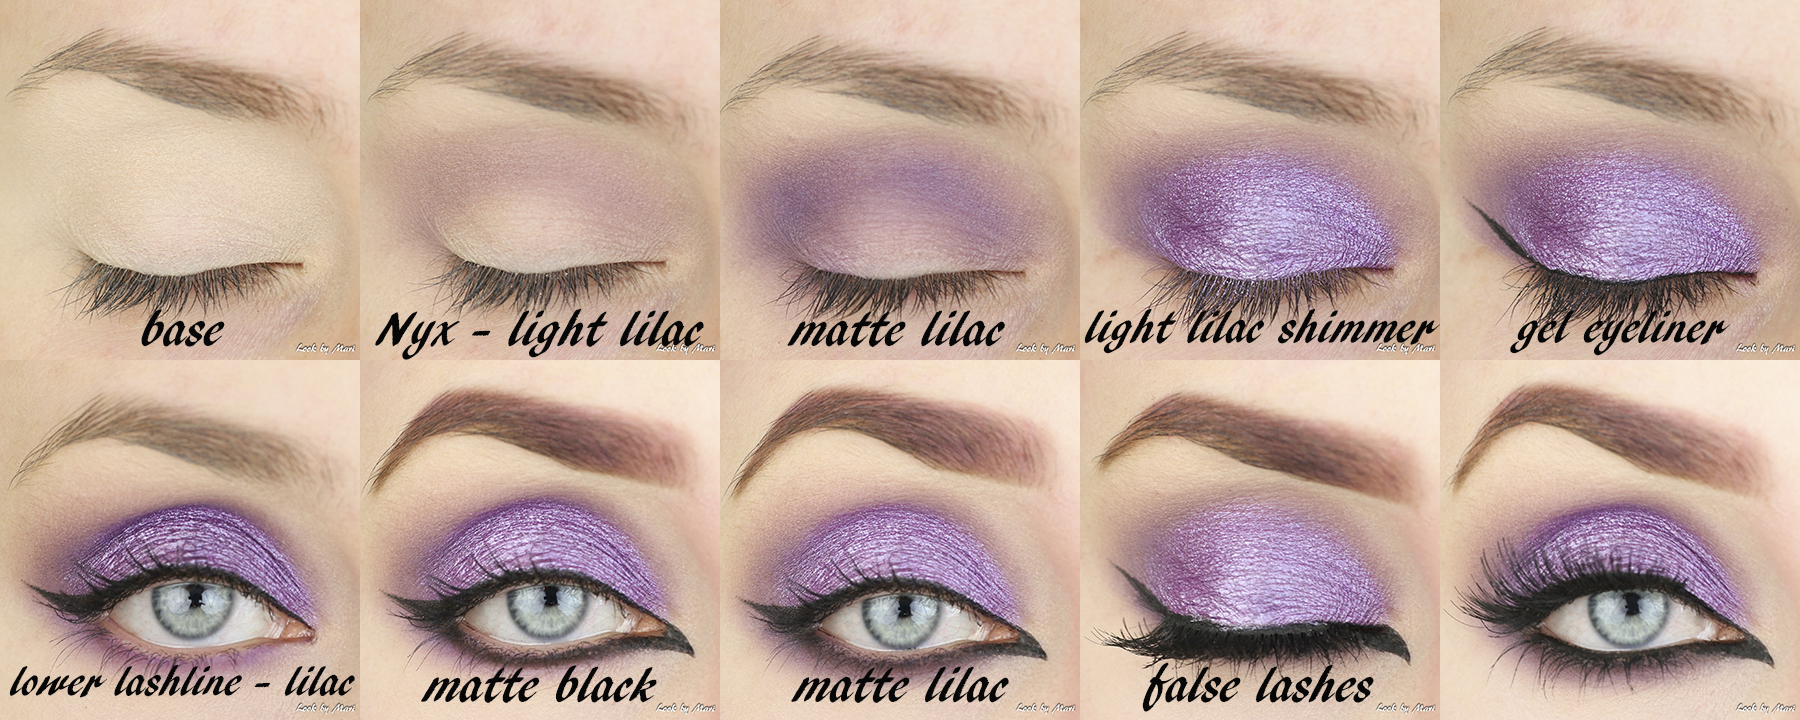 2 purple glitter eye makeup tutorial ideas inspo inspiration